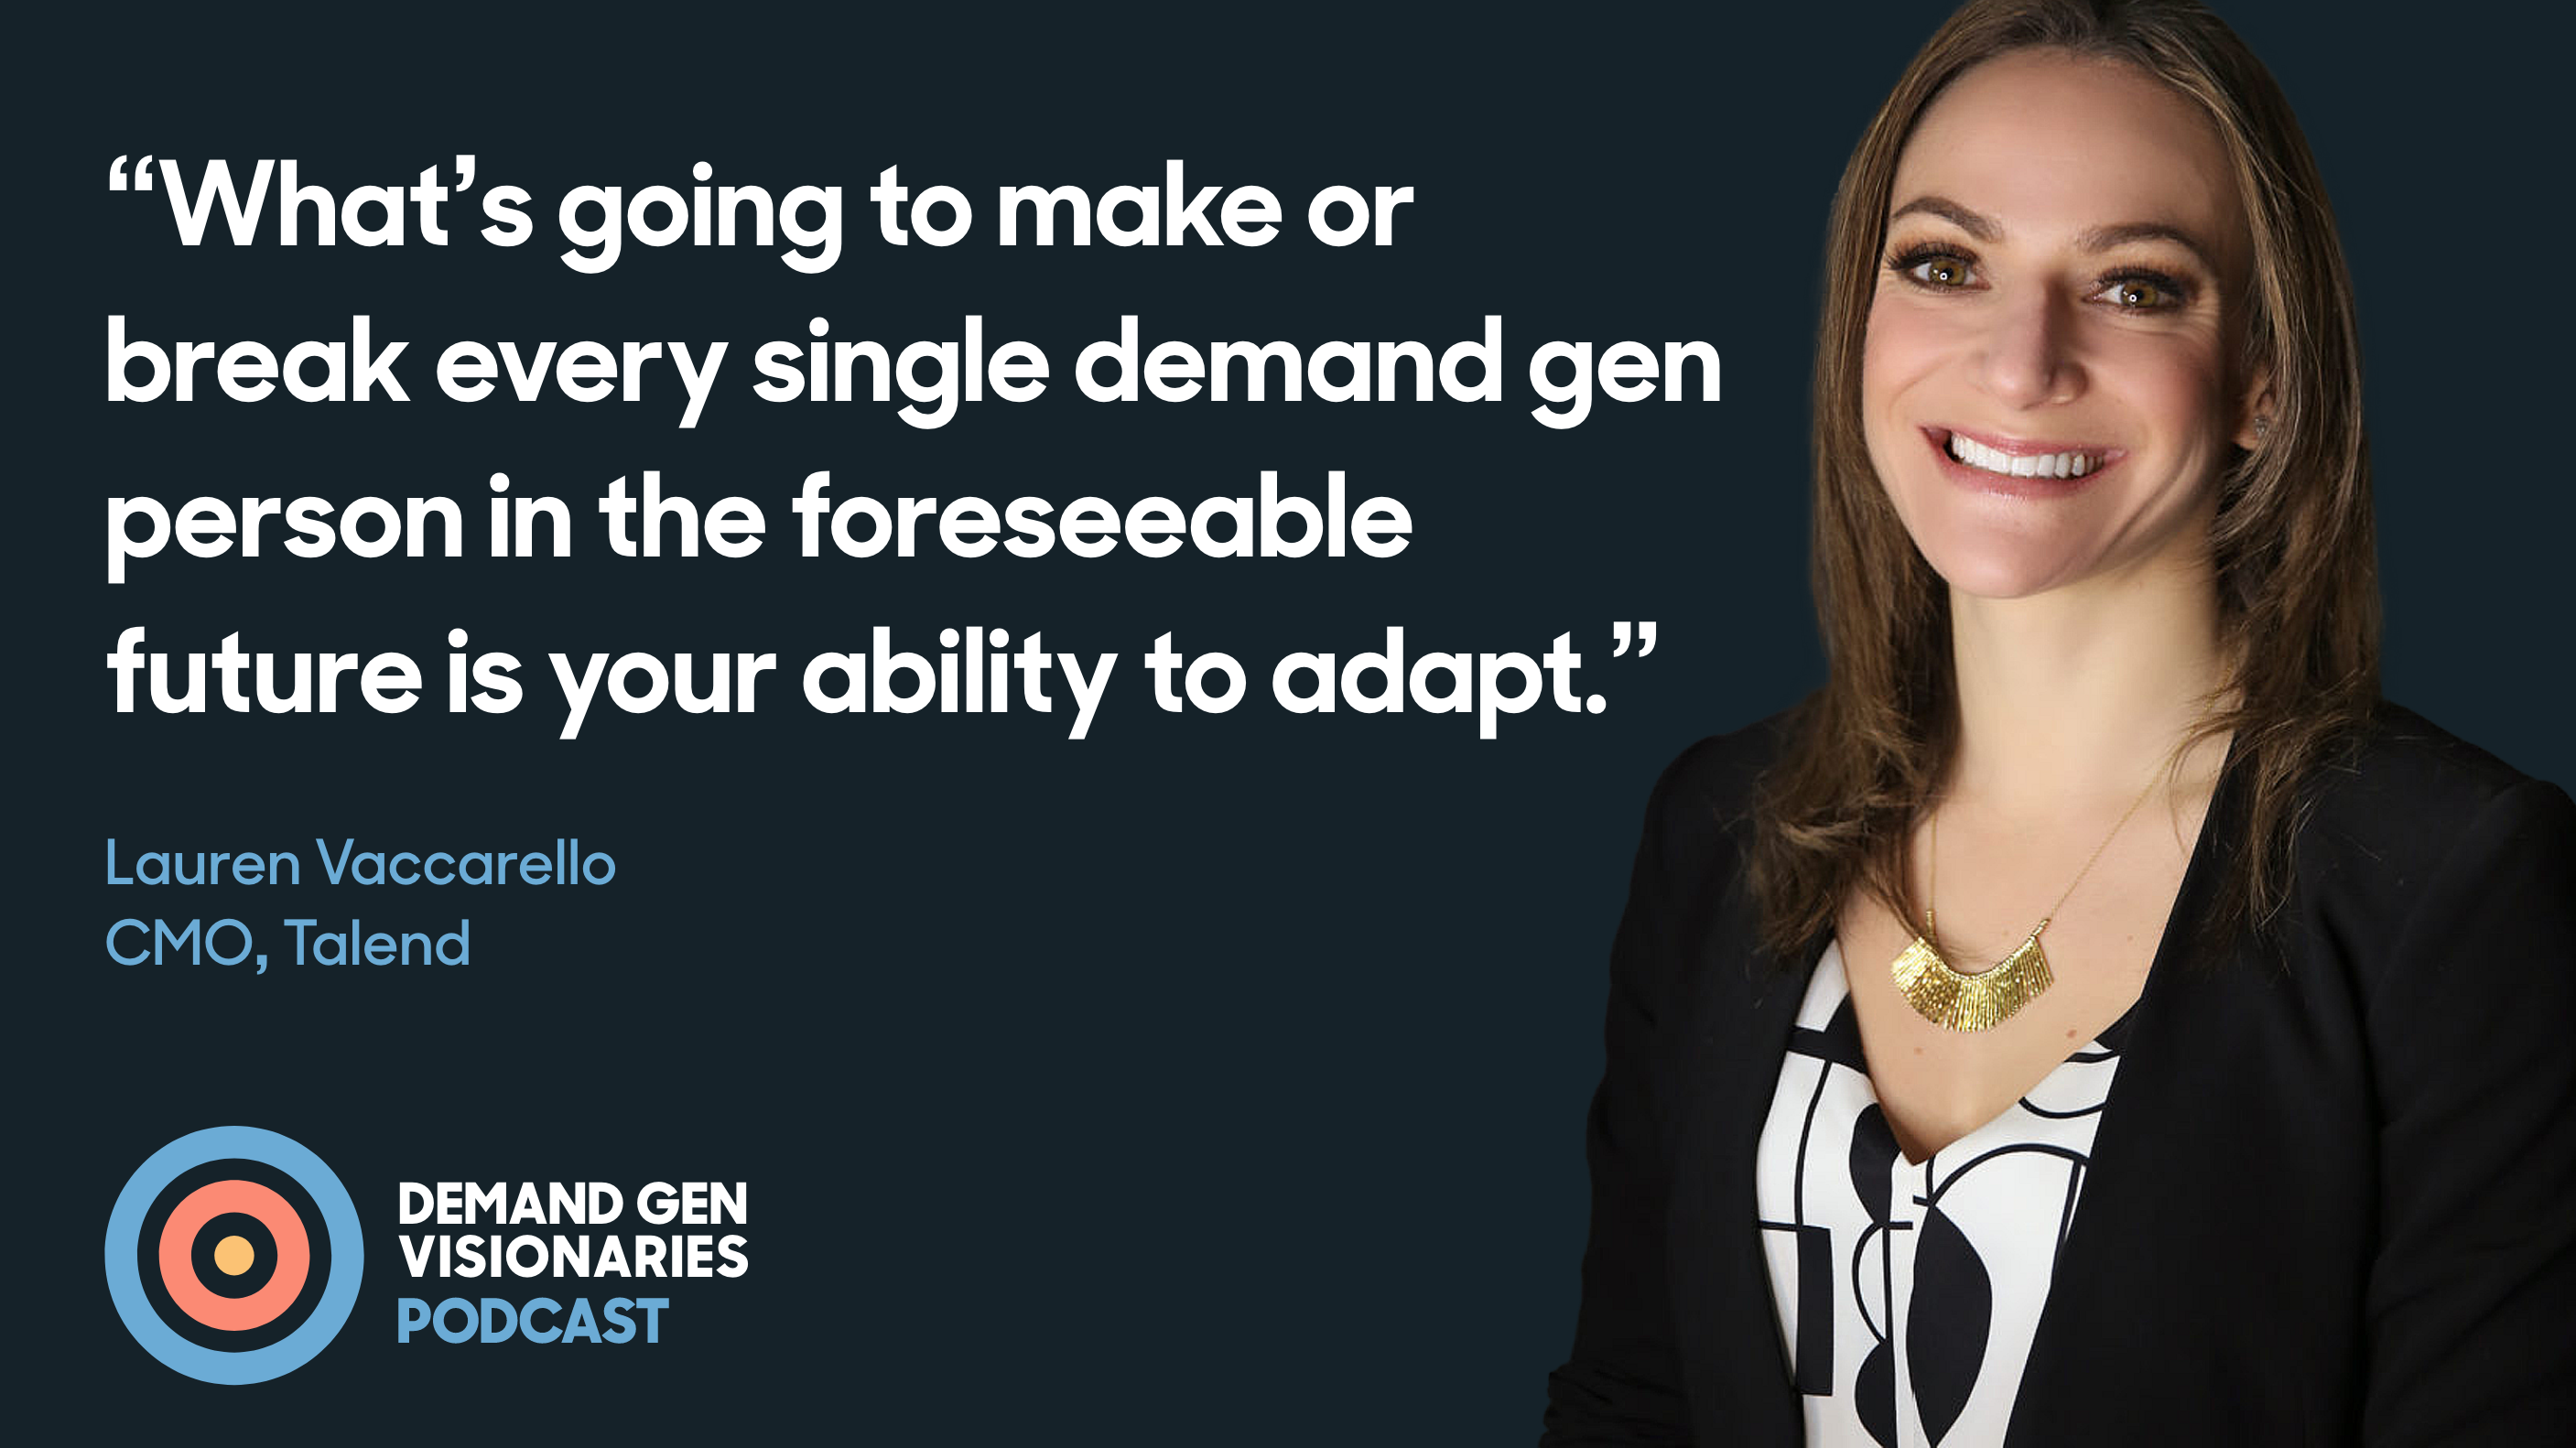 Lauren Vaccarello, CMO of Talend, joins the Demand Gen Visionaries podcast